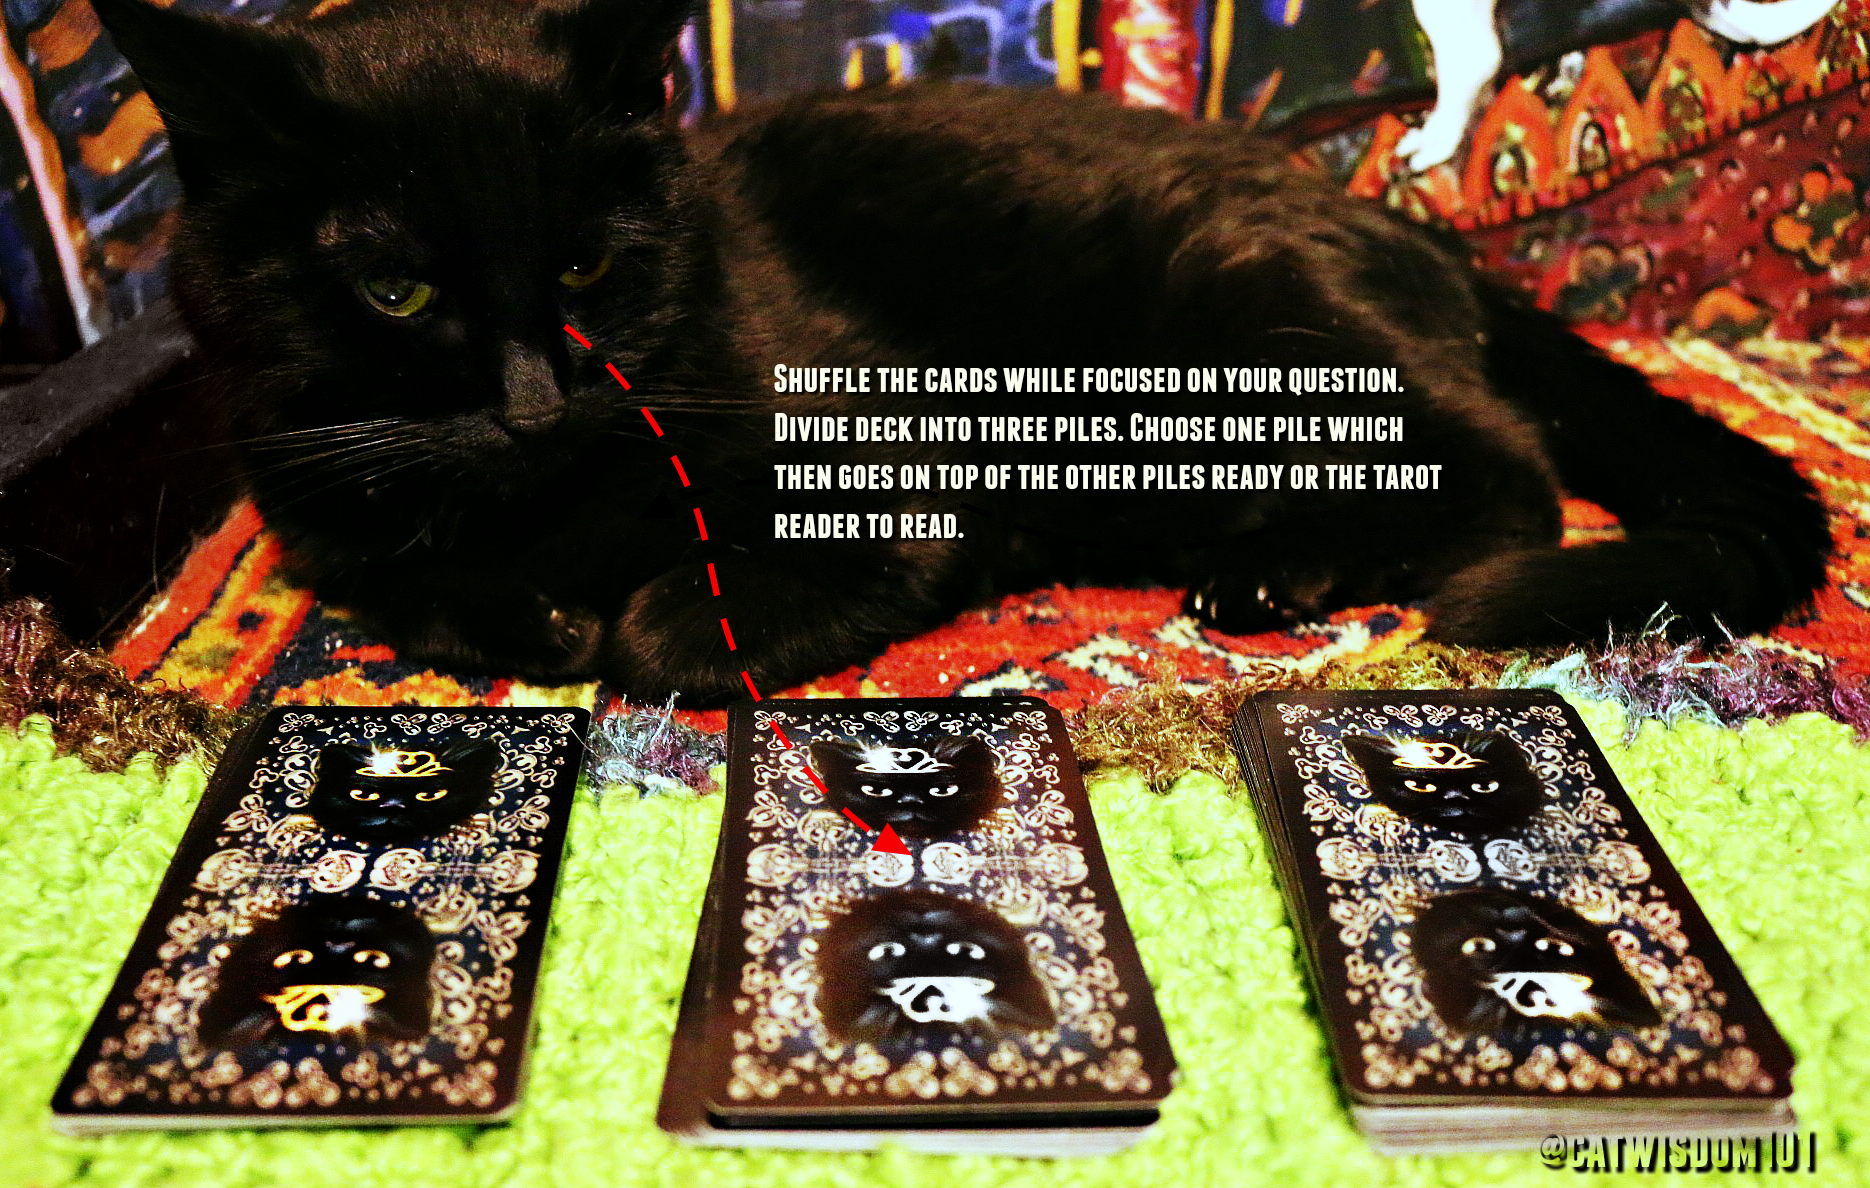 #PsychicCatClyde